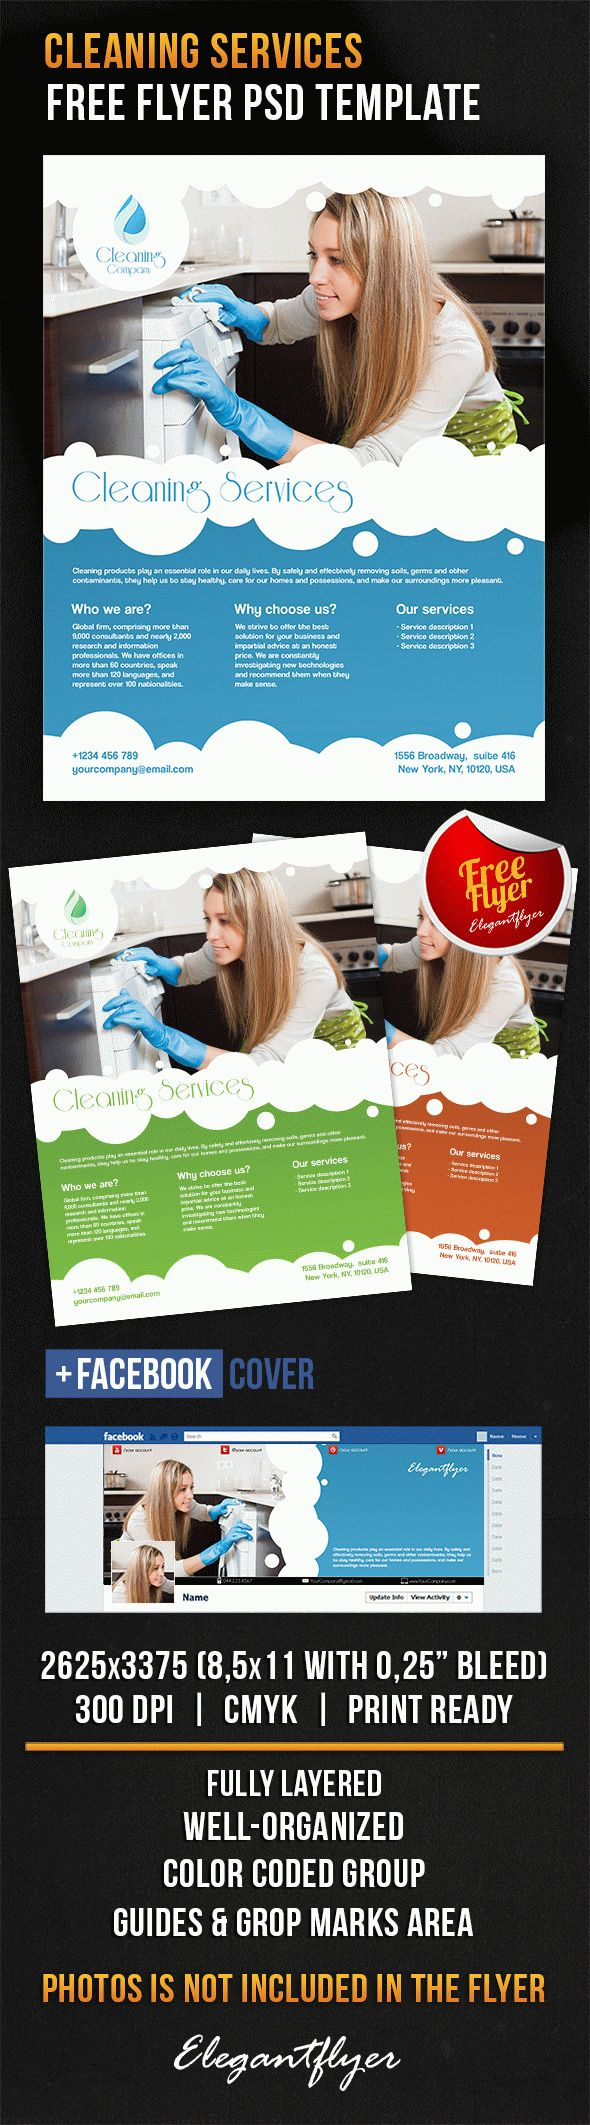 Cleaning Services – Free Flyer PSD Template + Facebook Cover